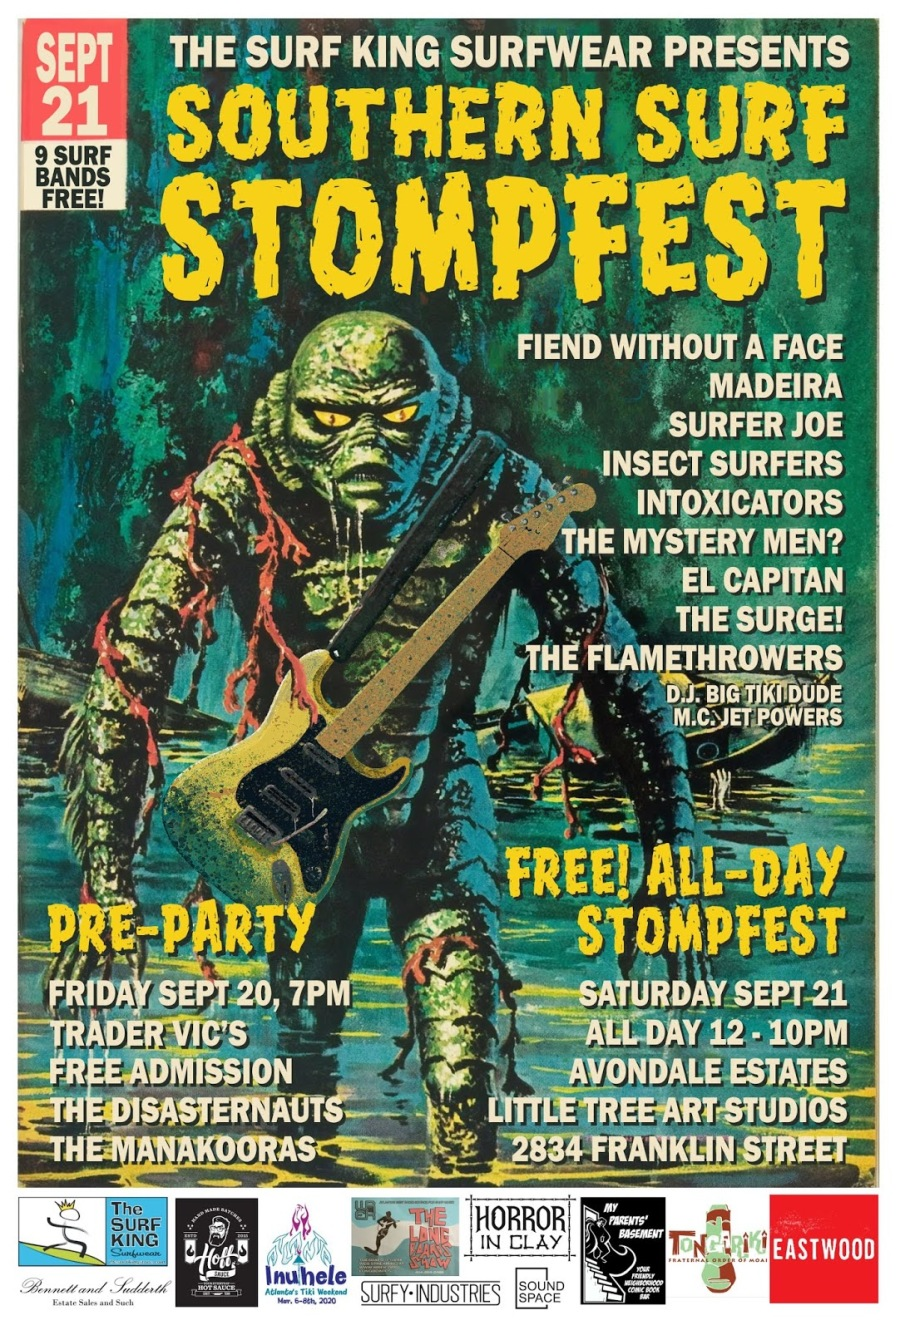 2019 Stompfest Flyer 18x12 009 Reduced